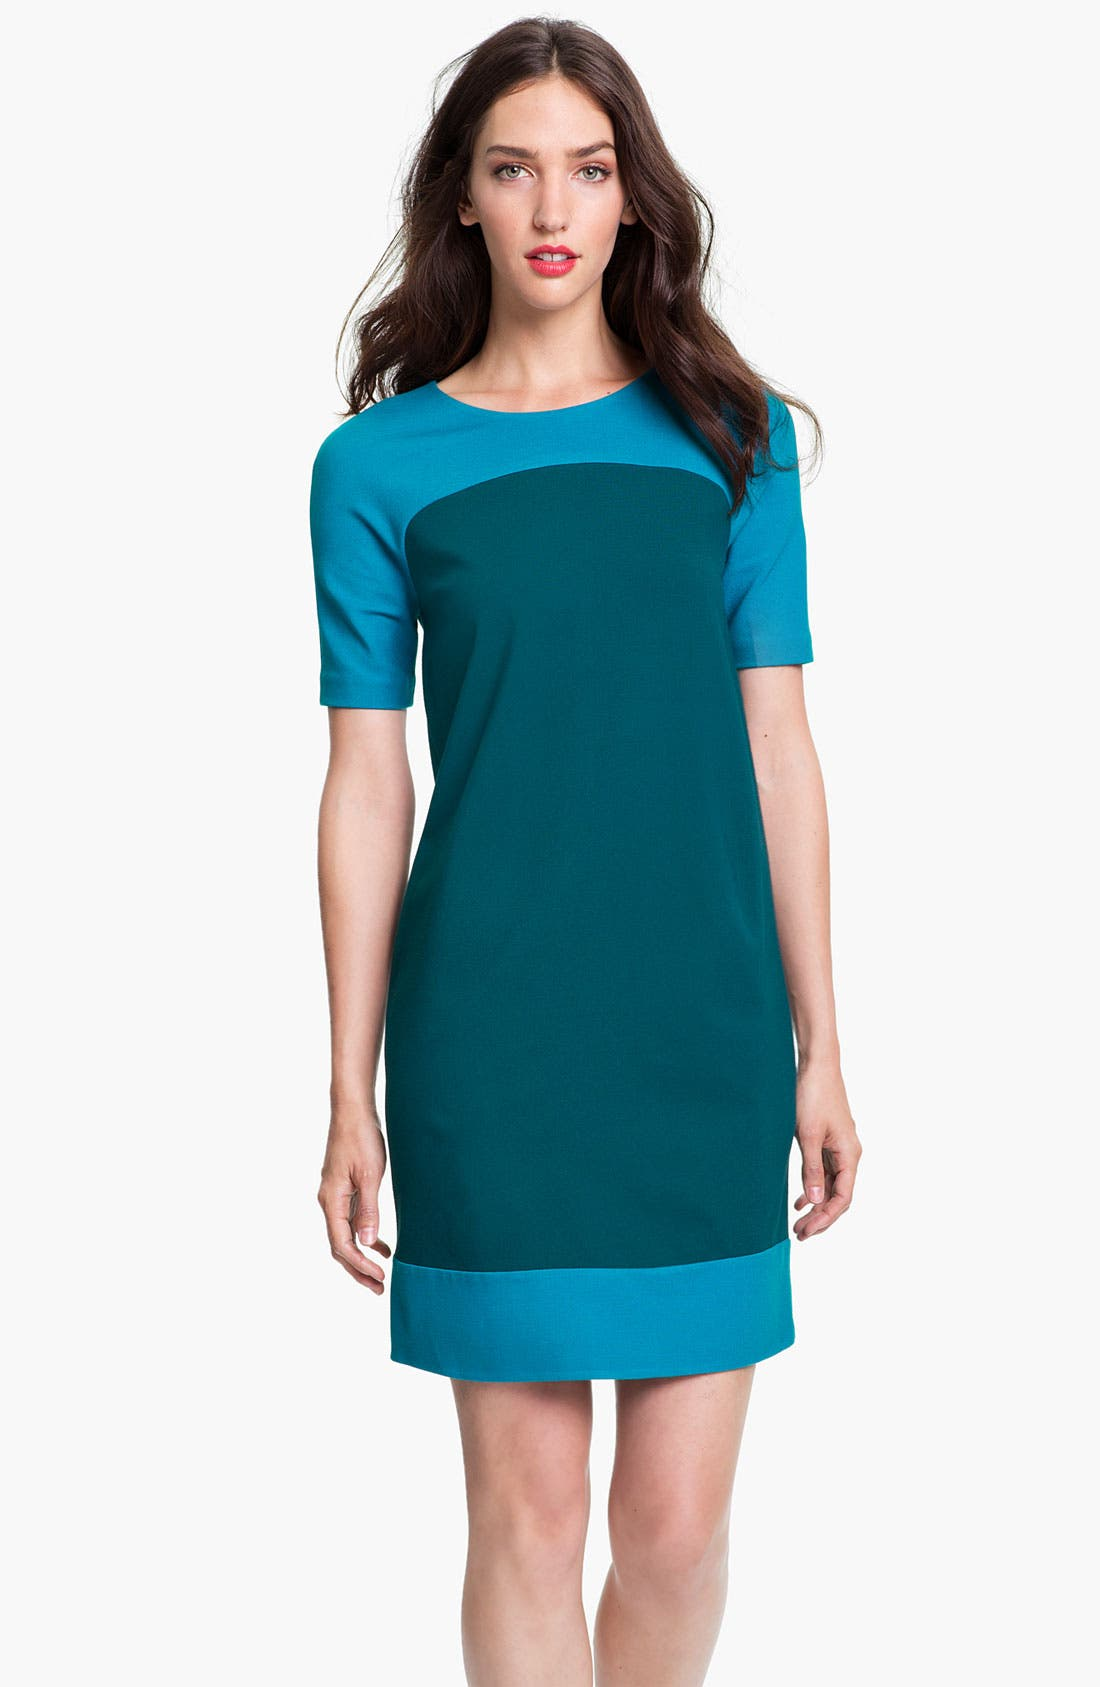 Alternate Image 1 Selected - kate spade new york 'racquel' shift dress (Nordstrom Exclusive)